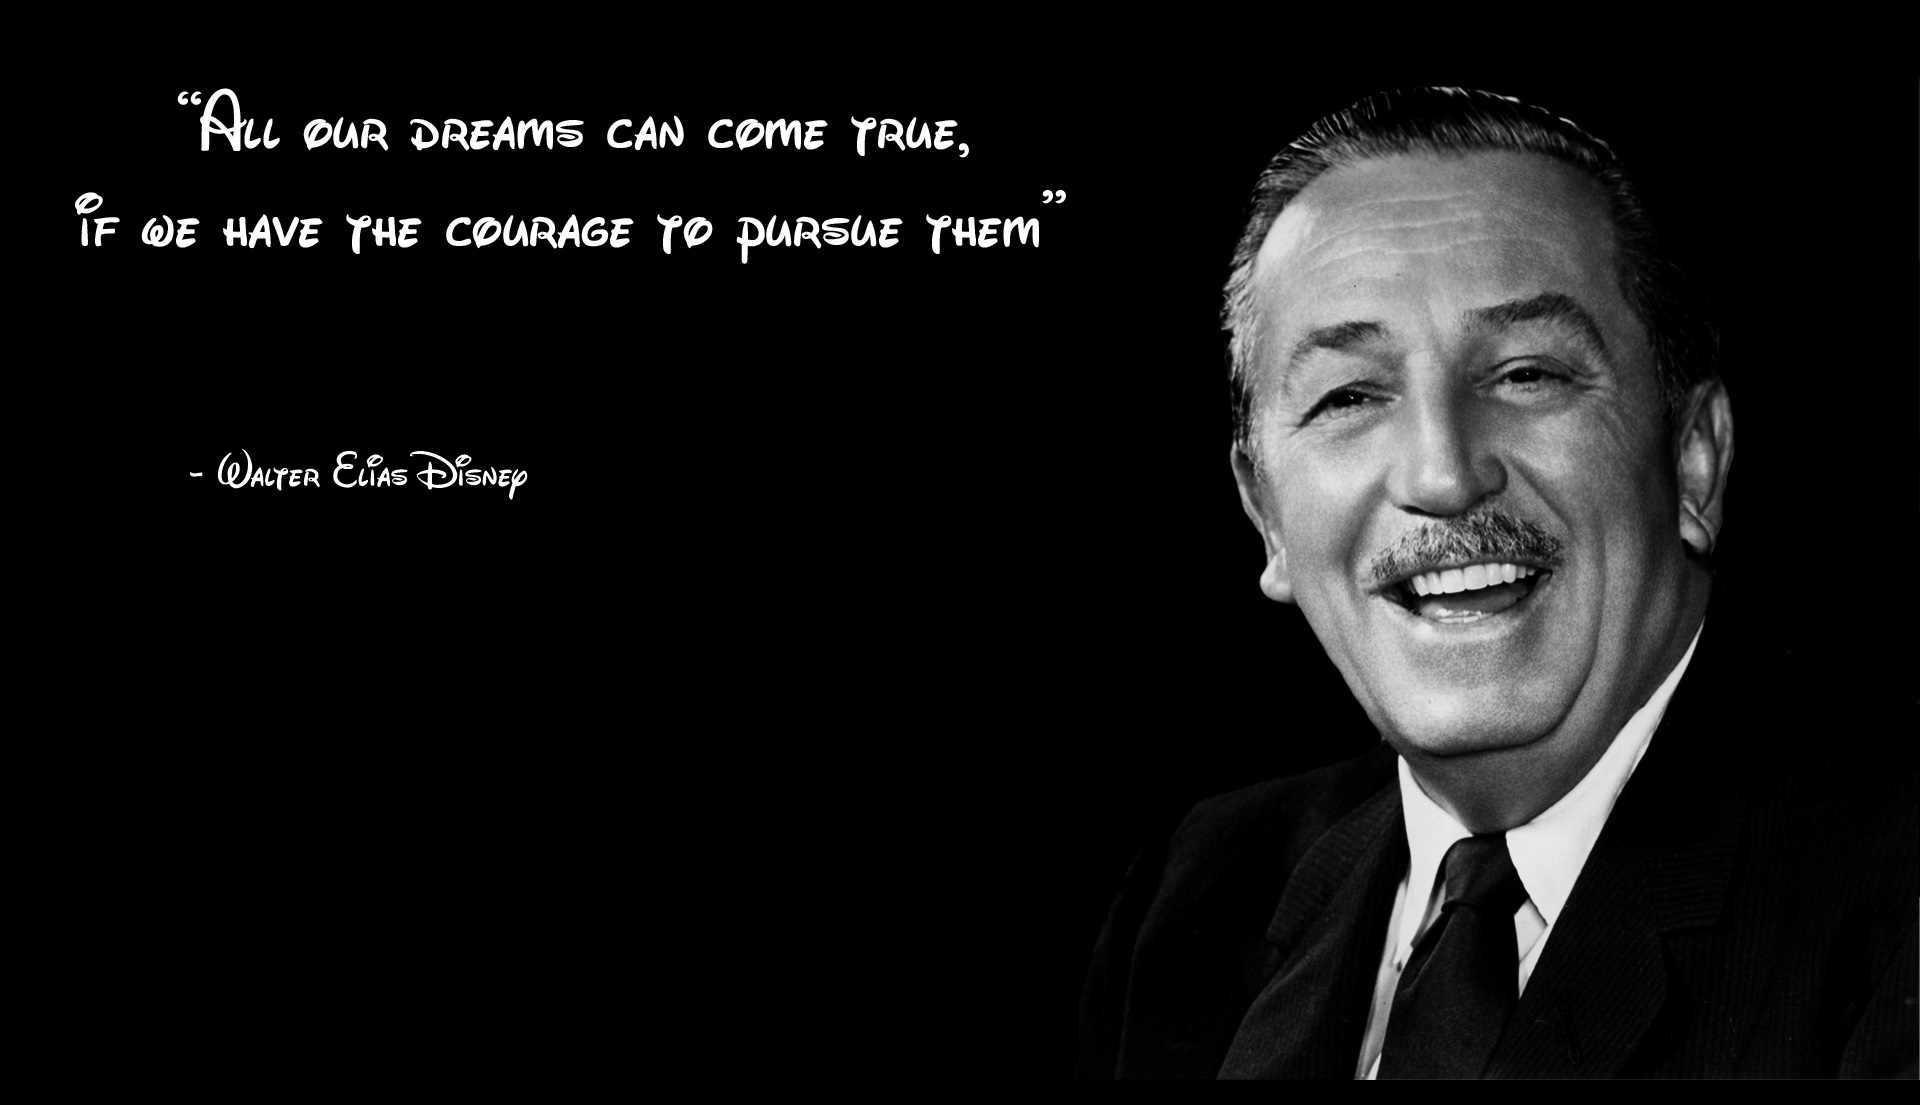 Walt Disney Quotes Wallpaper QuotesGram 1920x1105